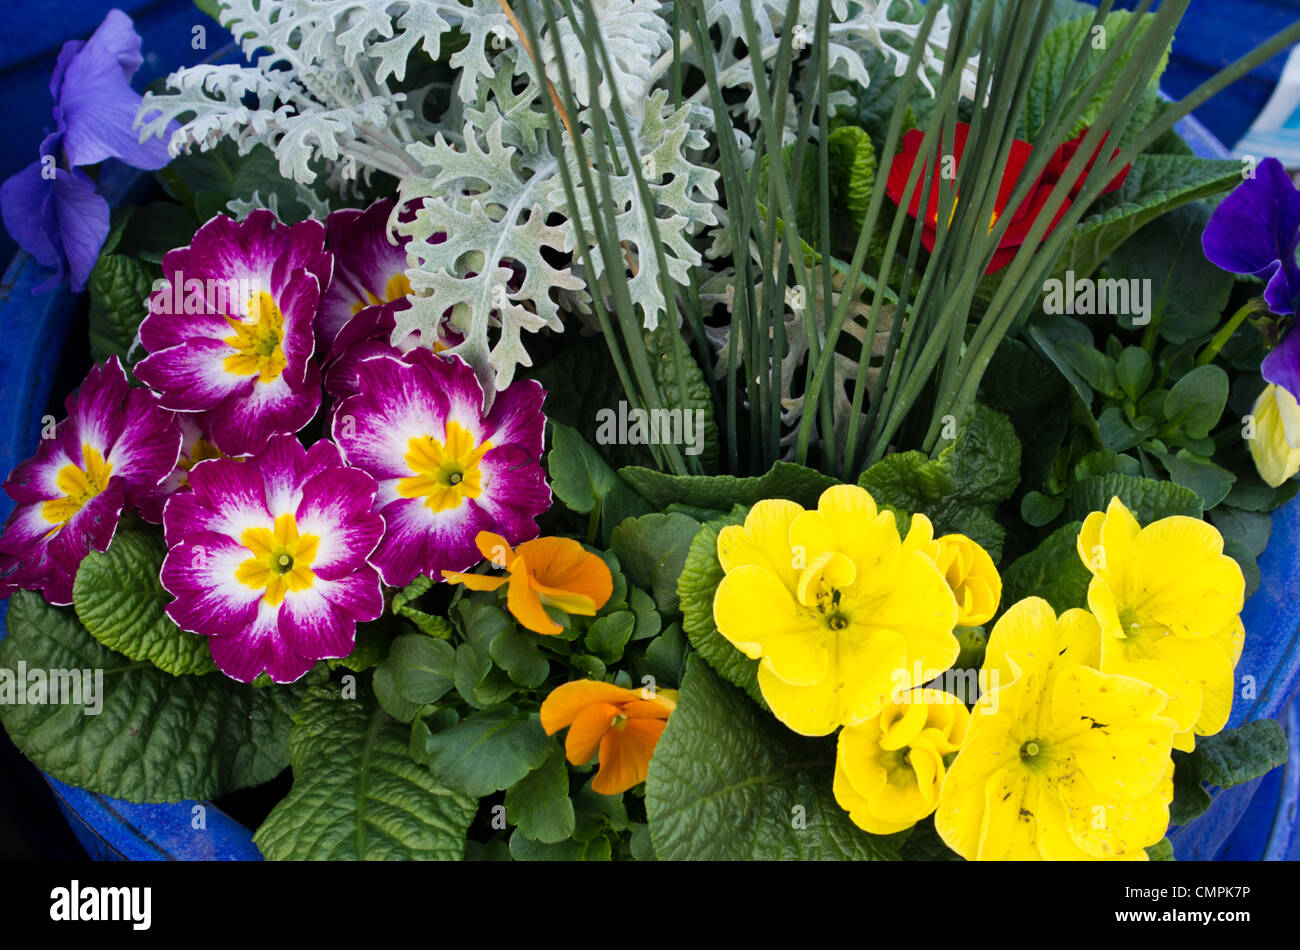 Primrose Flower Arrangement Stock Photos Primrose Flower